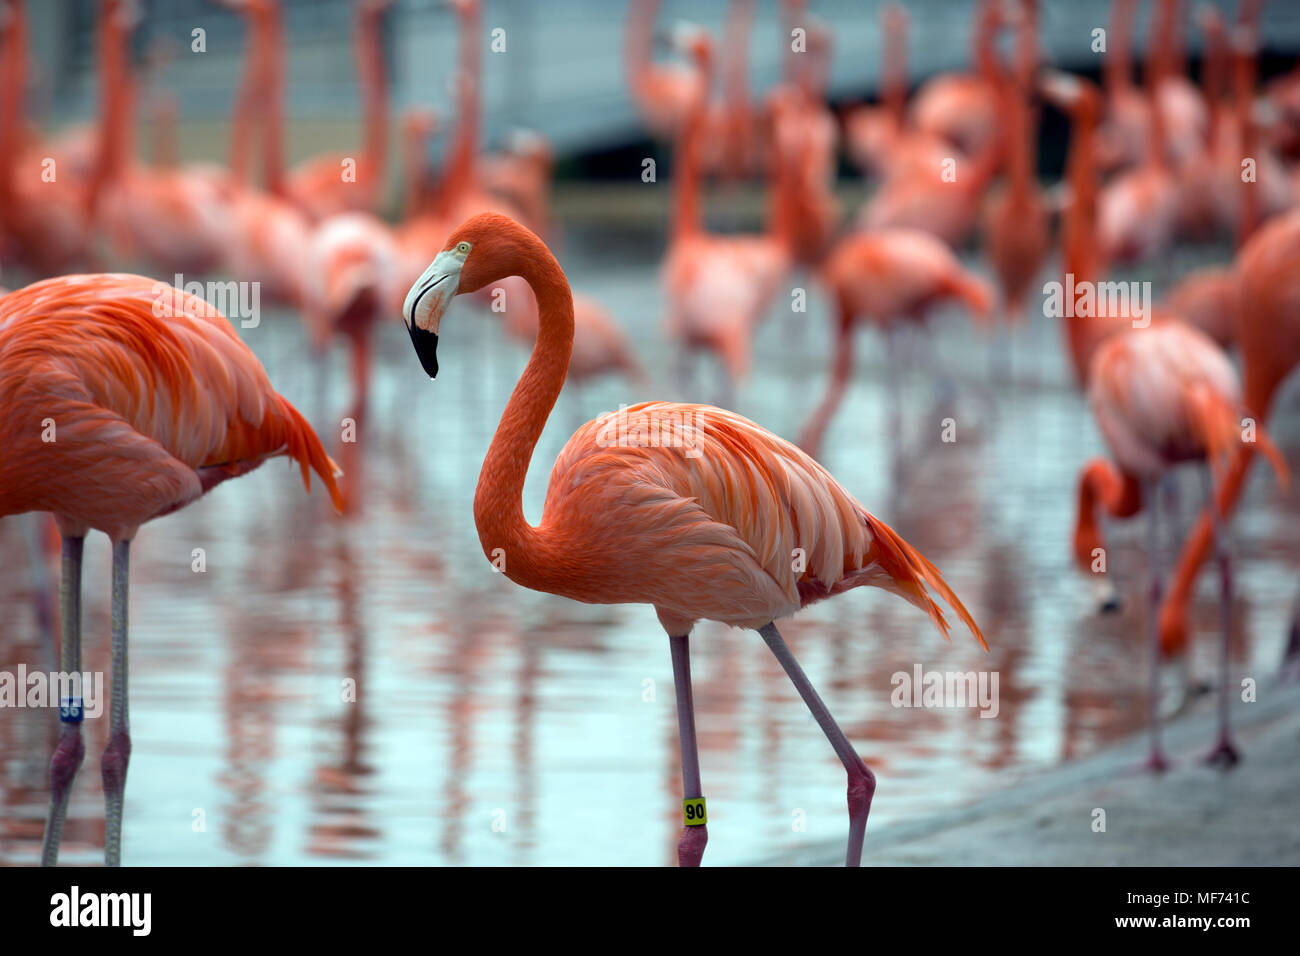 Pink flamingo in the water - Stock Image